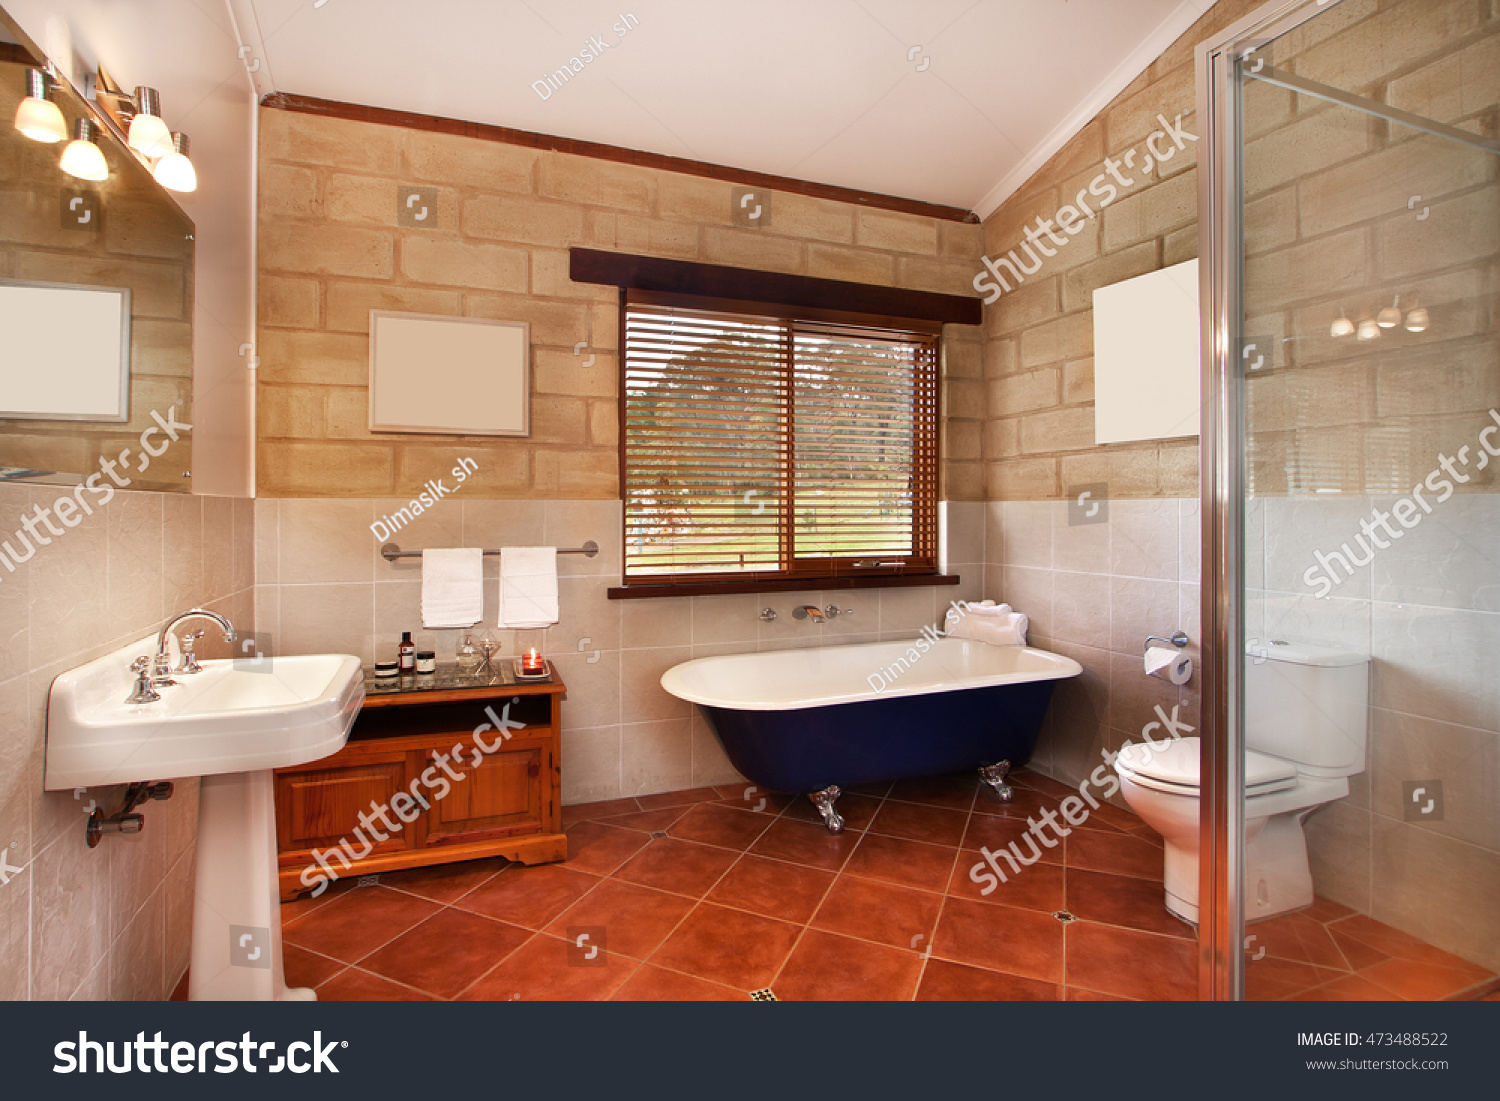 modern bathroom luxury apartment stock photo 473488522 shutterstock. Black Bedroom Furniture Sets. Home Design Ideas